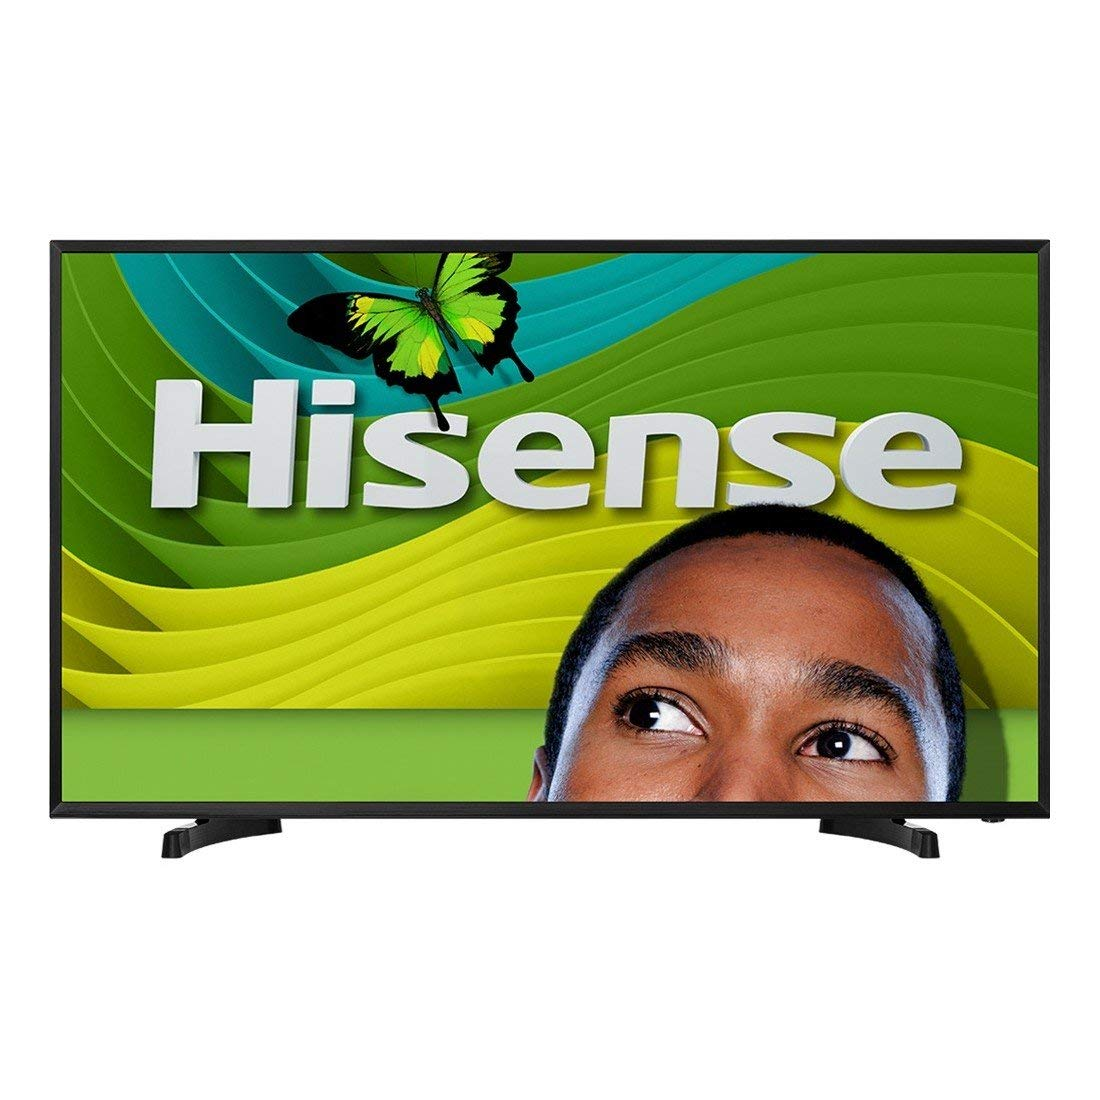 An image related to Hisense 43H320D/H3D 43-Inch FHD LED TV